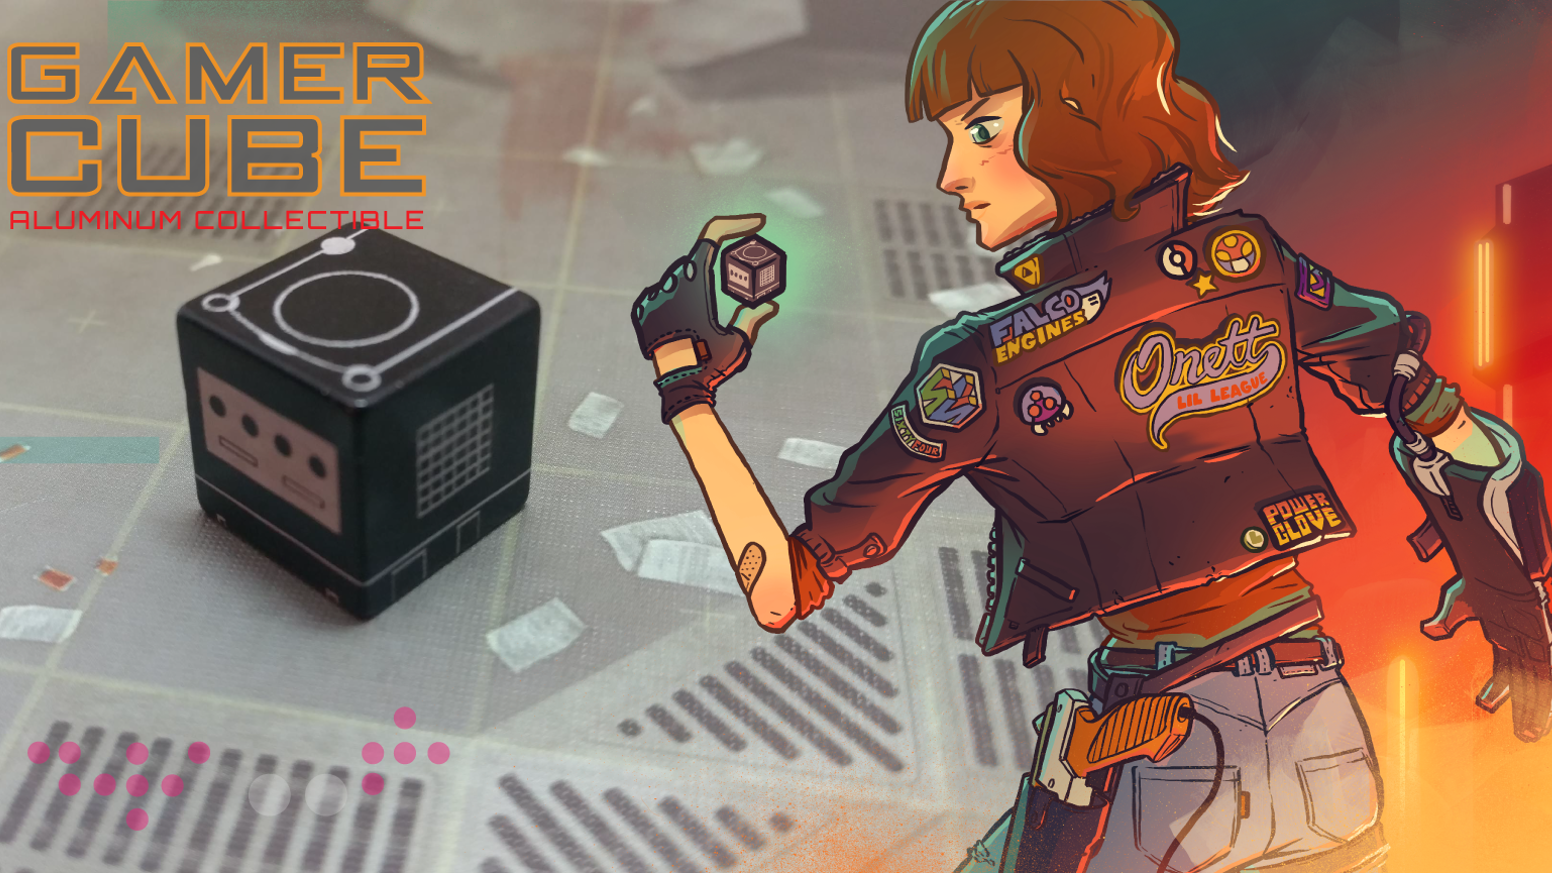 Show your love for the greatest cube-shaped gaming machine with a tiny metal collectible. Custom designed to be awesome.